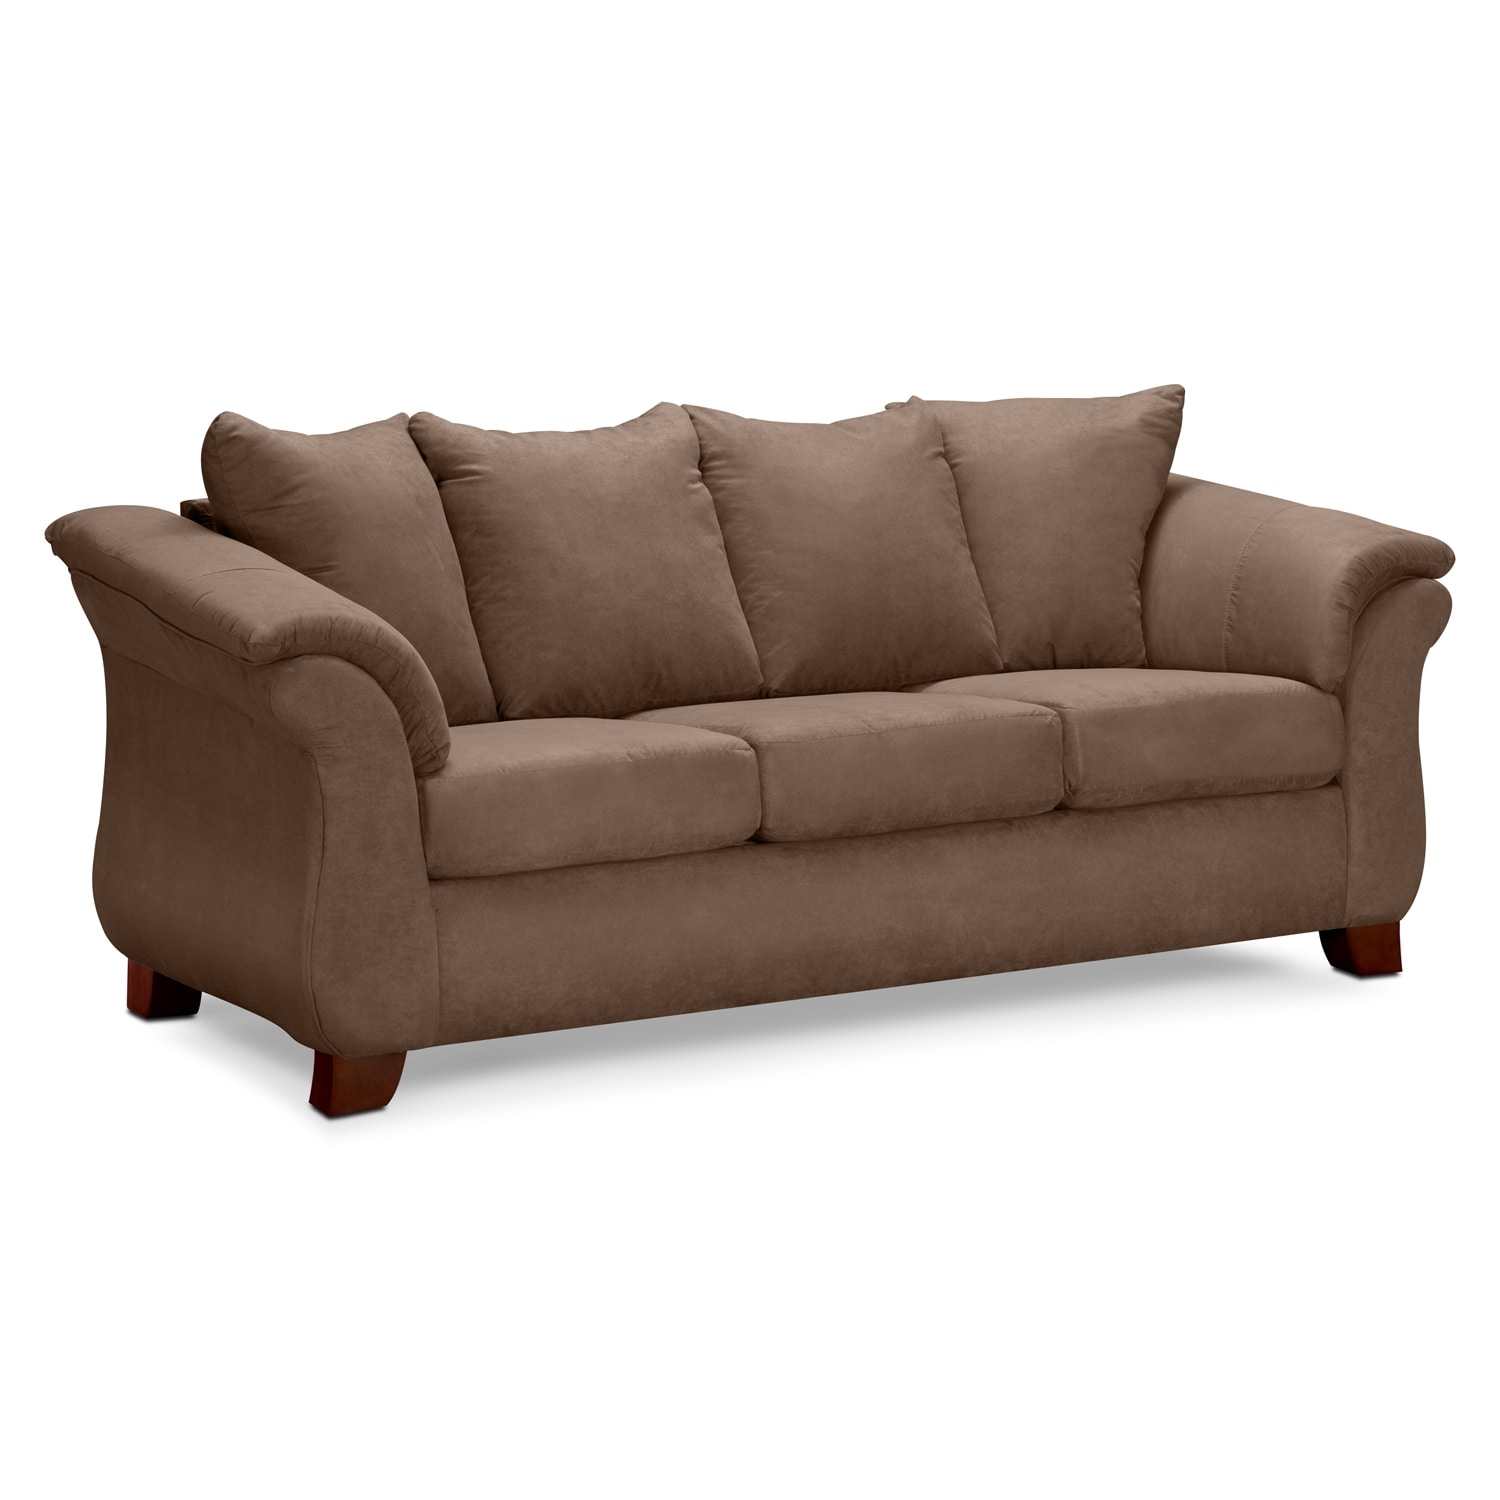 Merveilleux Living Room Furniture   Adrian Sofa